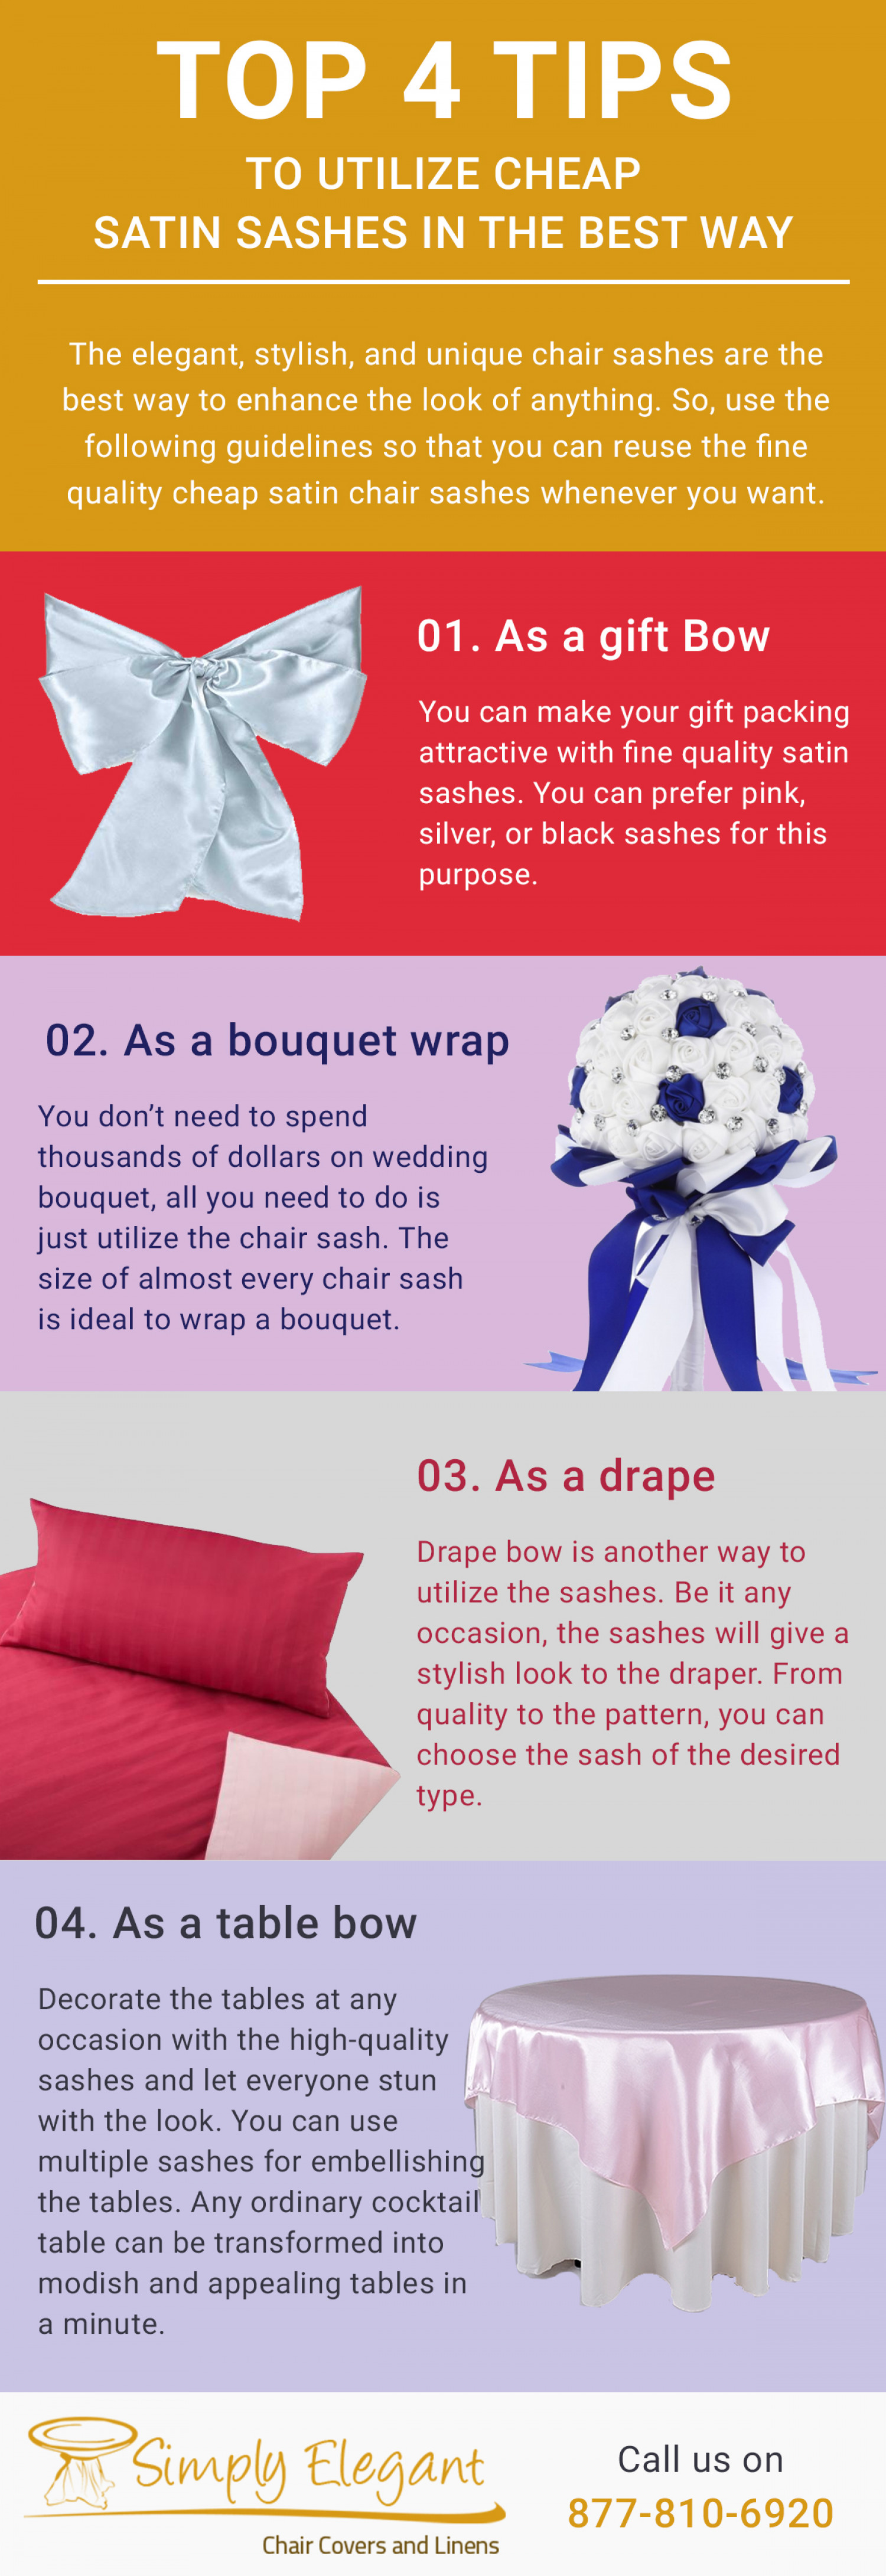 Top 4 Tips to utilize cheap satin sashes in the best way Infographic